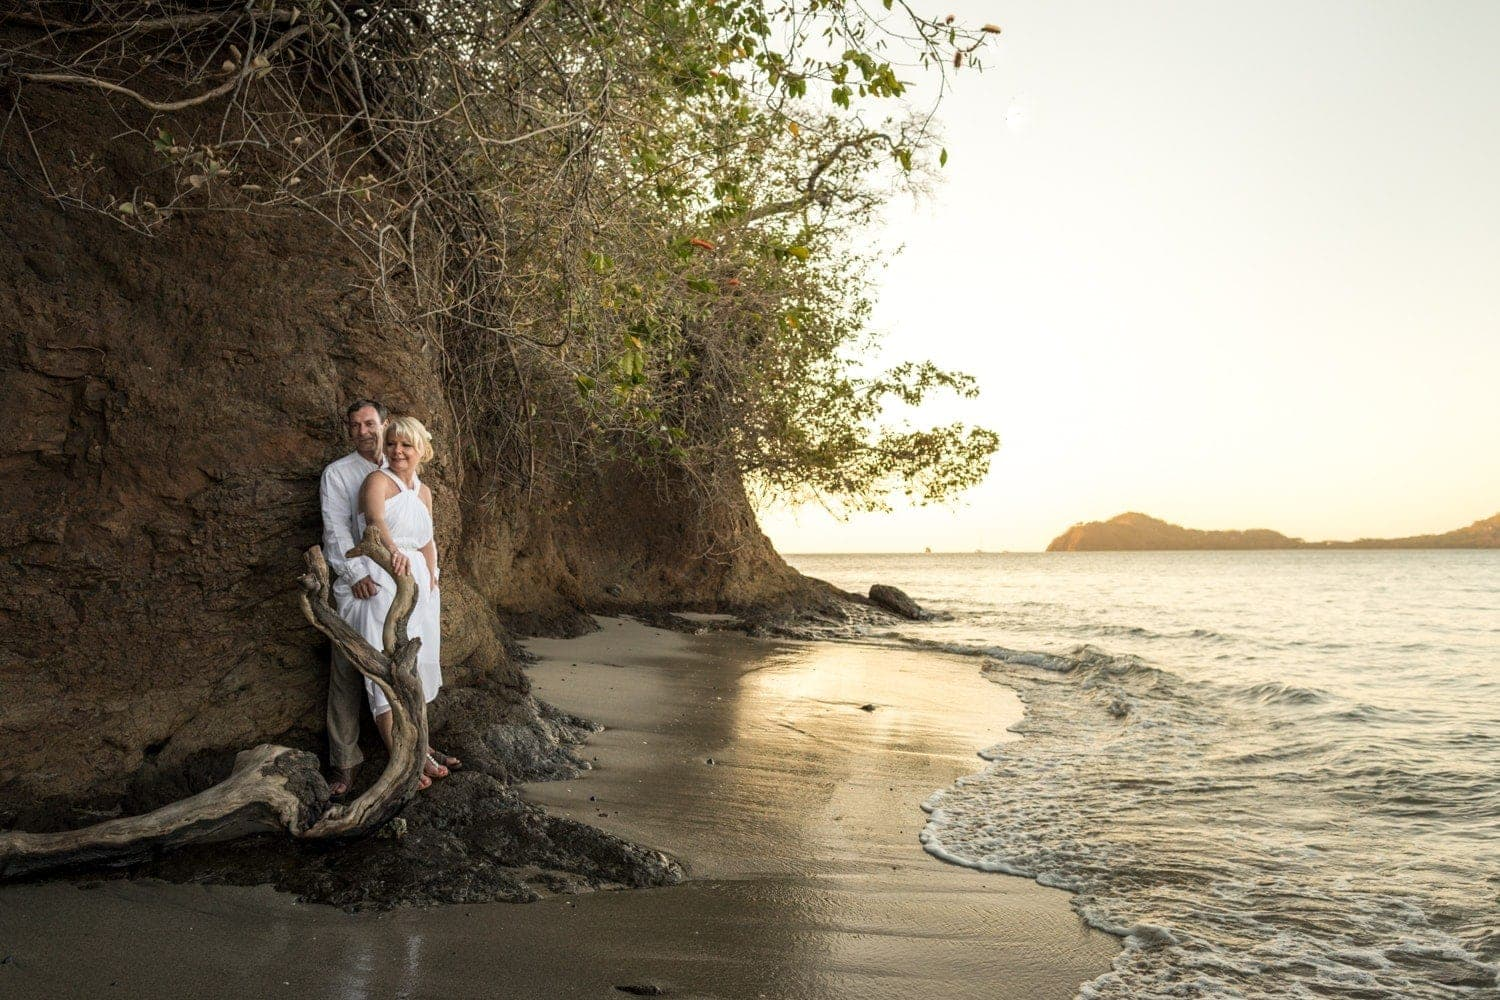 Photo of bride and groom on beach in Costa  Rica at sunset.